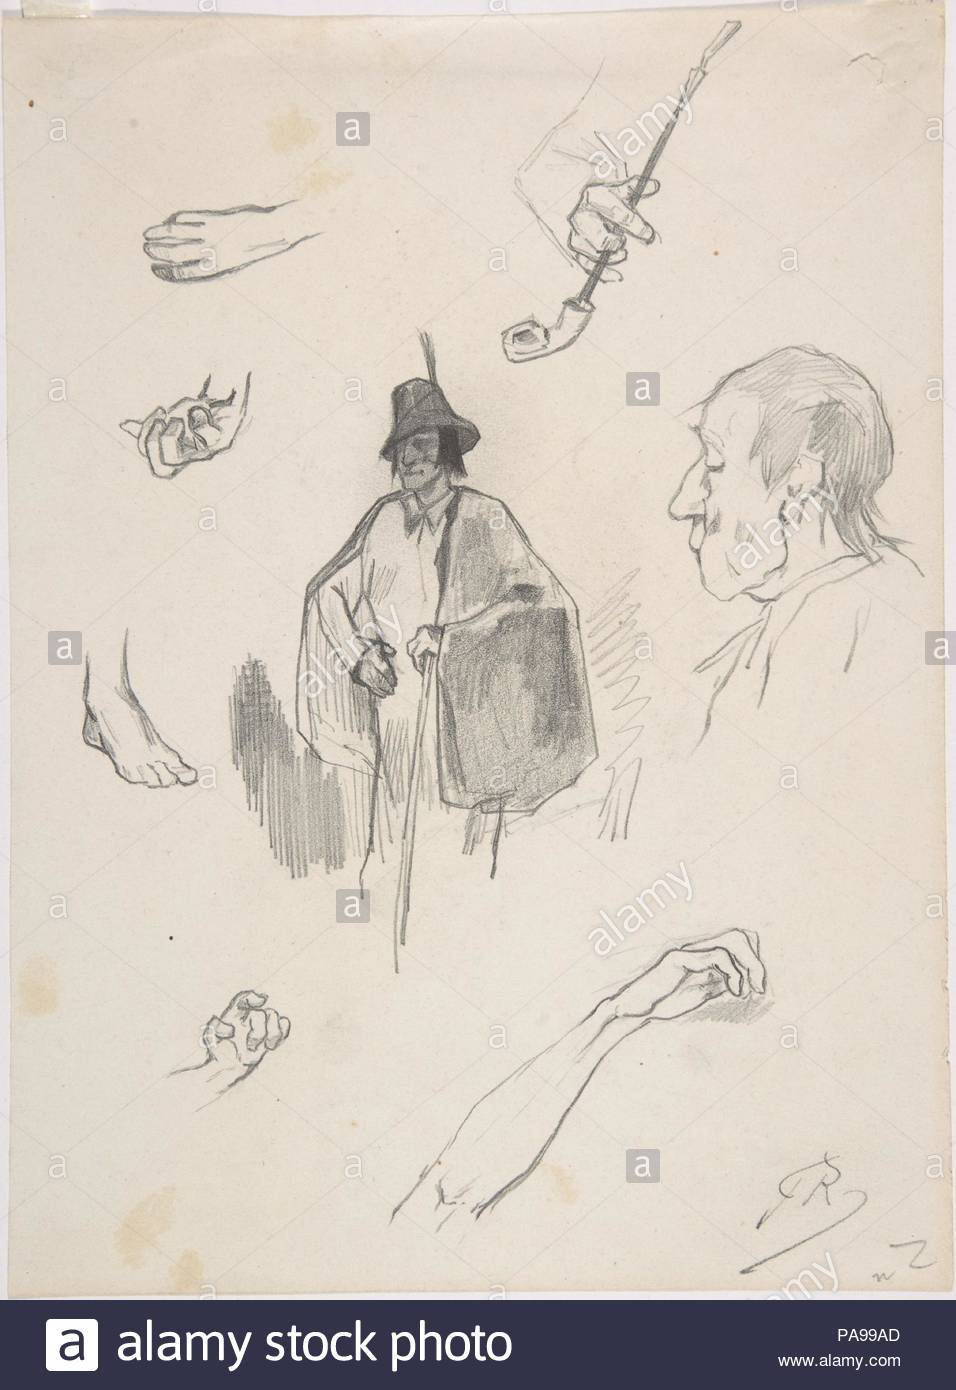 Sheet with figures, details of hands and feet. Artist: Félicien Rops  (Belgian, Namur 1833-1898 Essonnes). Dimensions: sheet: 8-3/4 x 6-7/16.  Date: ca. 1870.